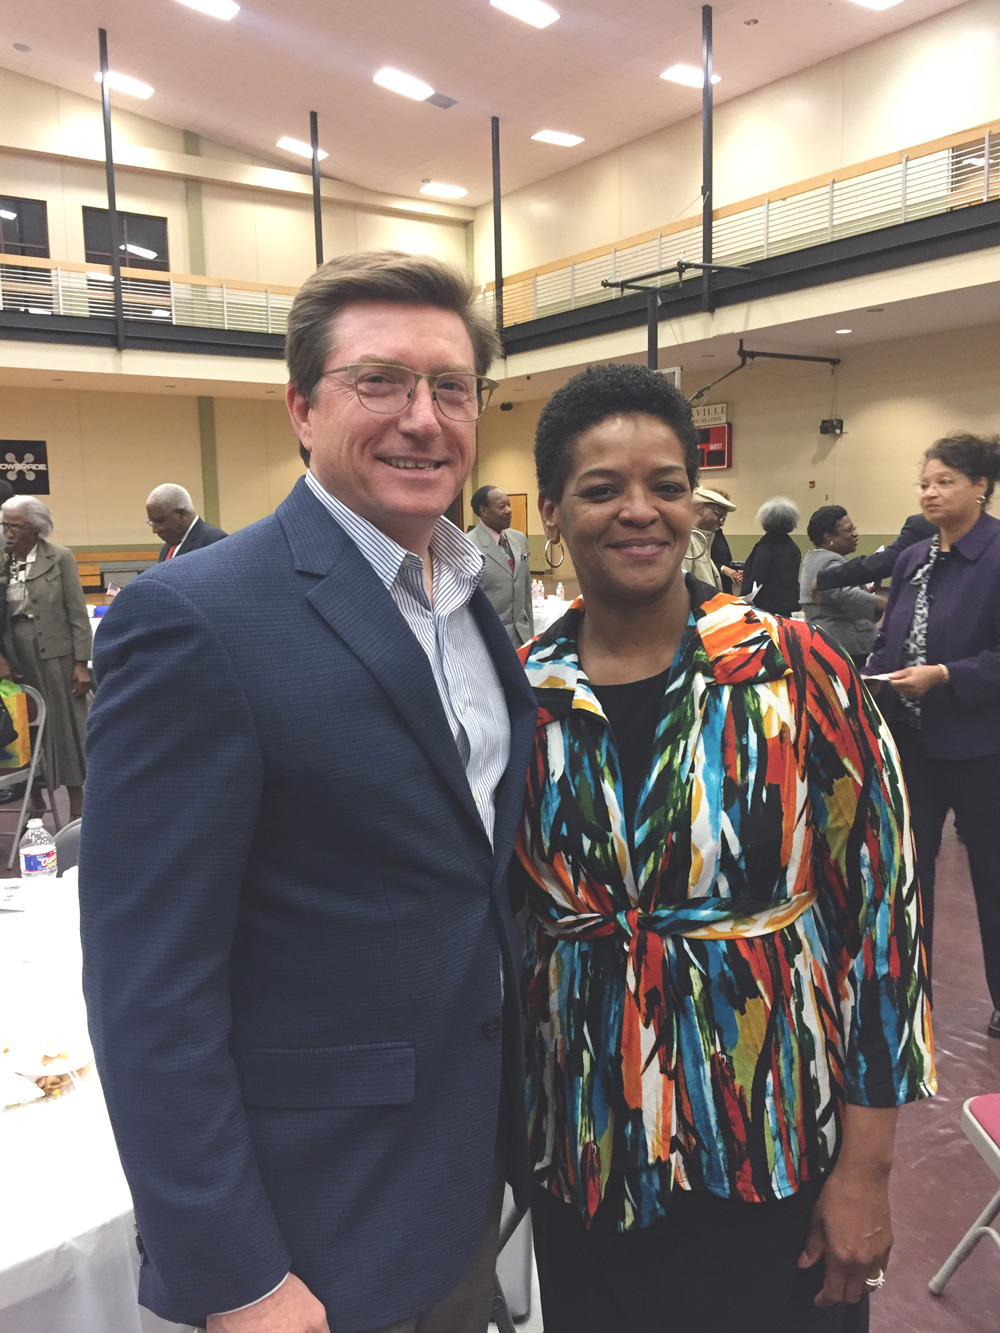 David Baria with Senator Angela Turner Ford